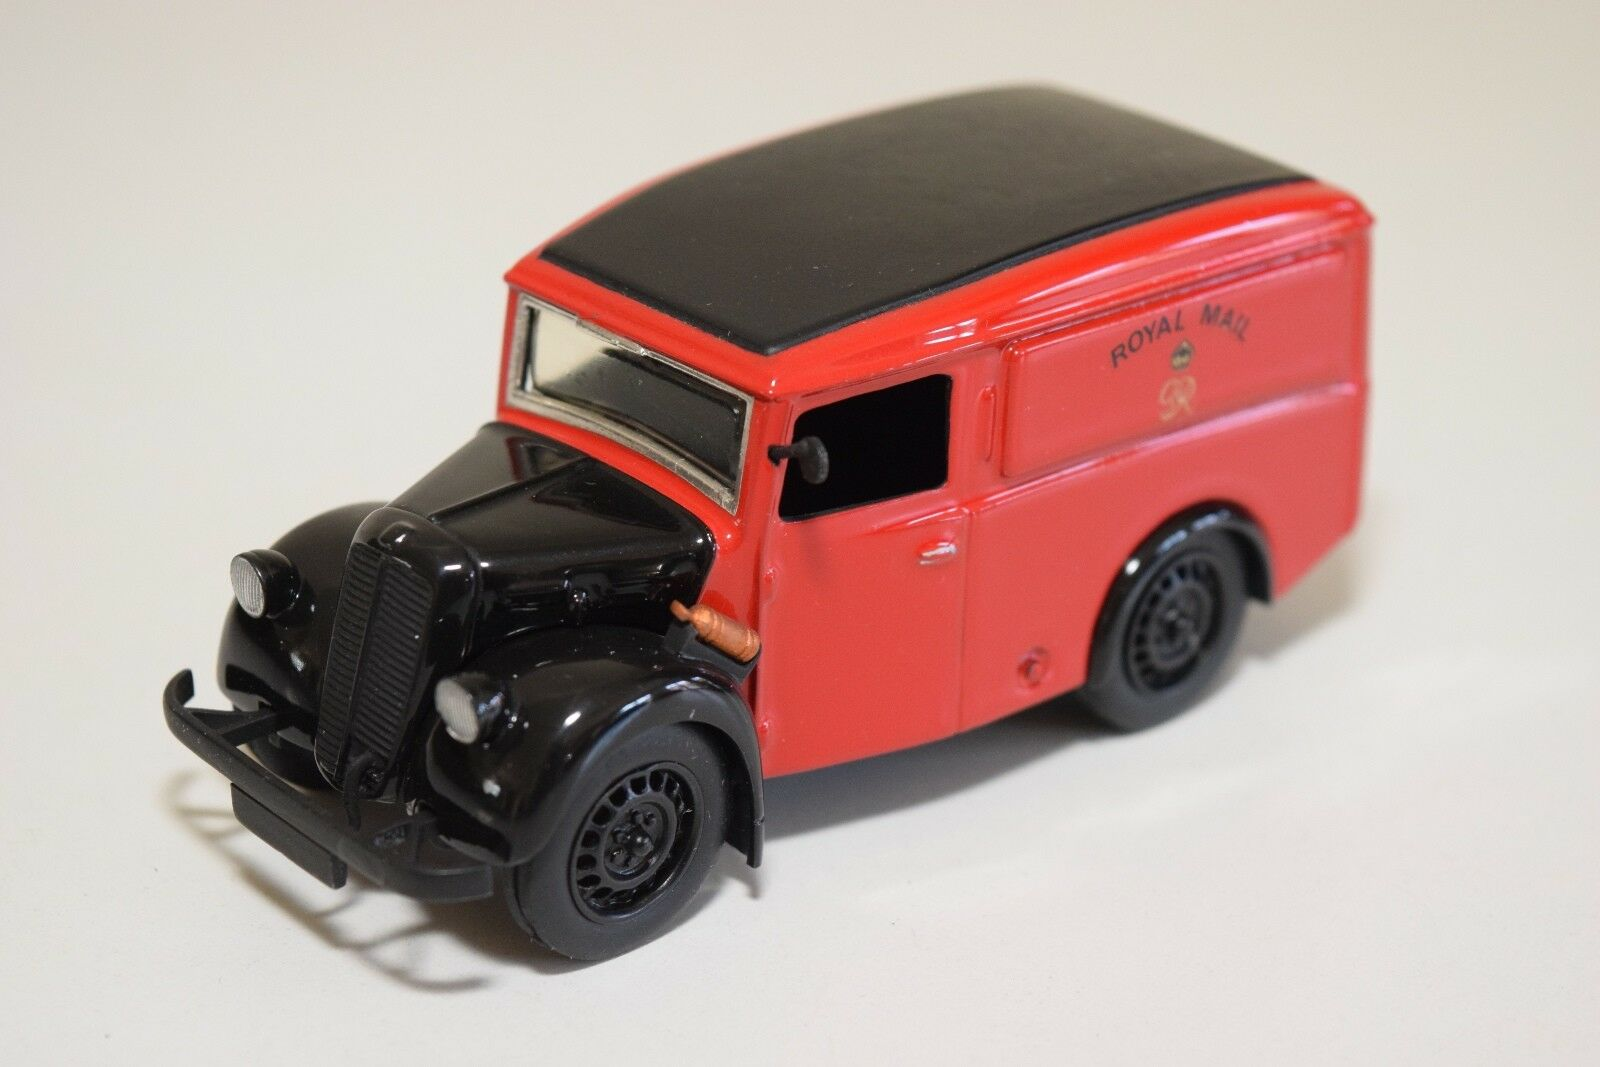 SMTS MODEL ROAD REPLICAS FORD E83W VAN ROYAL MAIL LIVERY MINT CONDITION